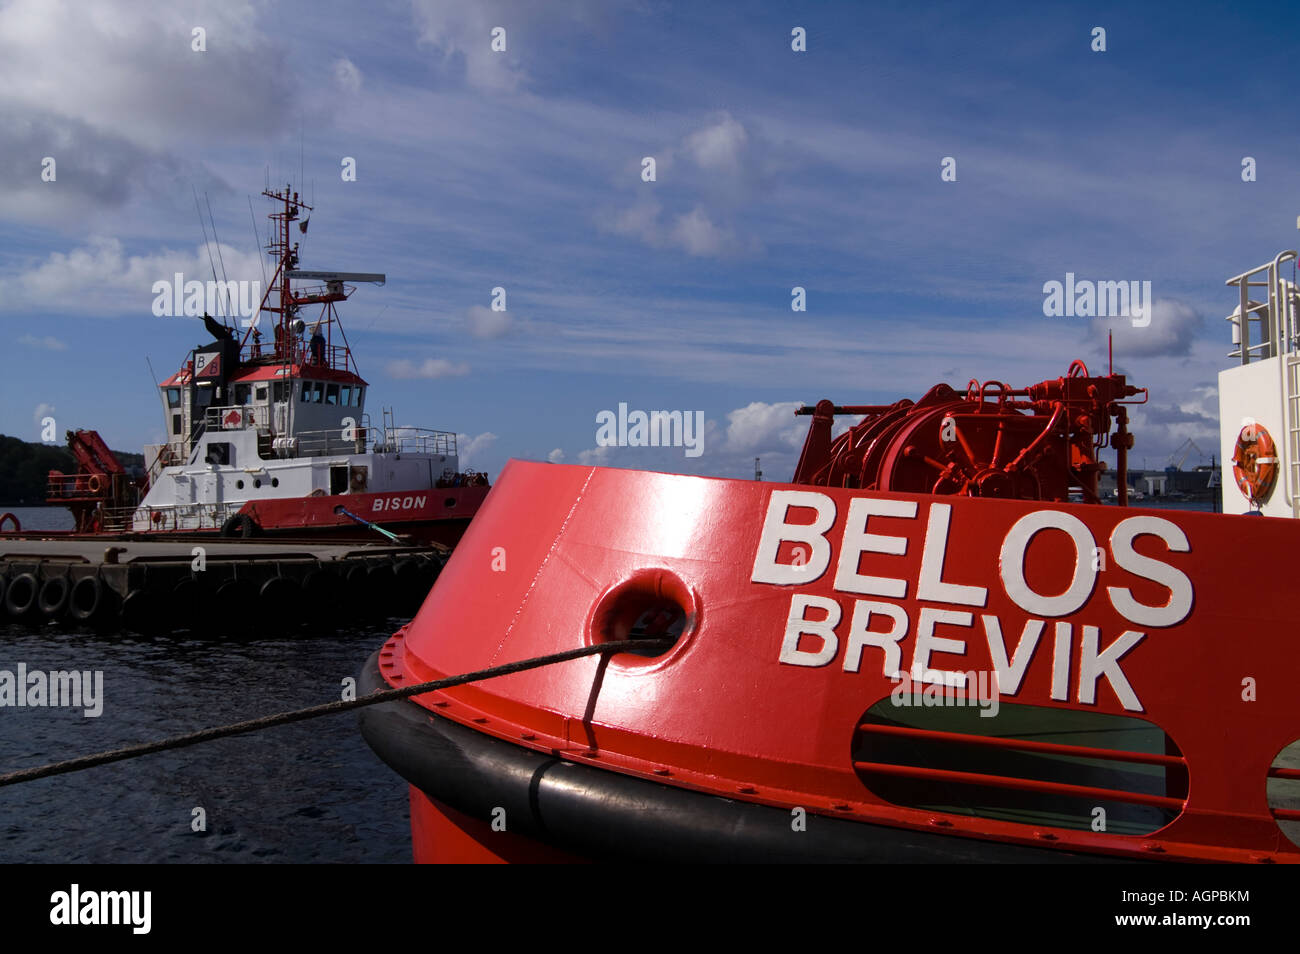 Belos Brevik Stock Photo